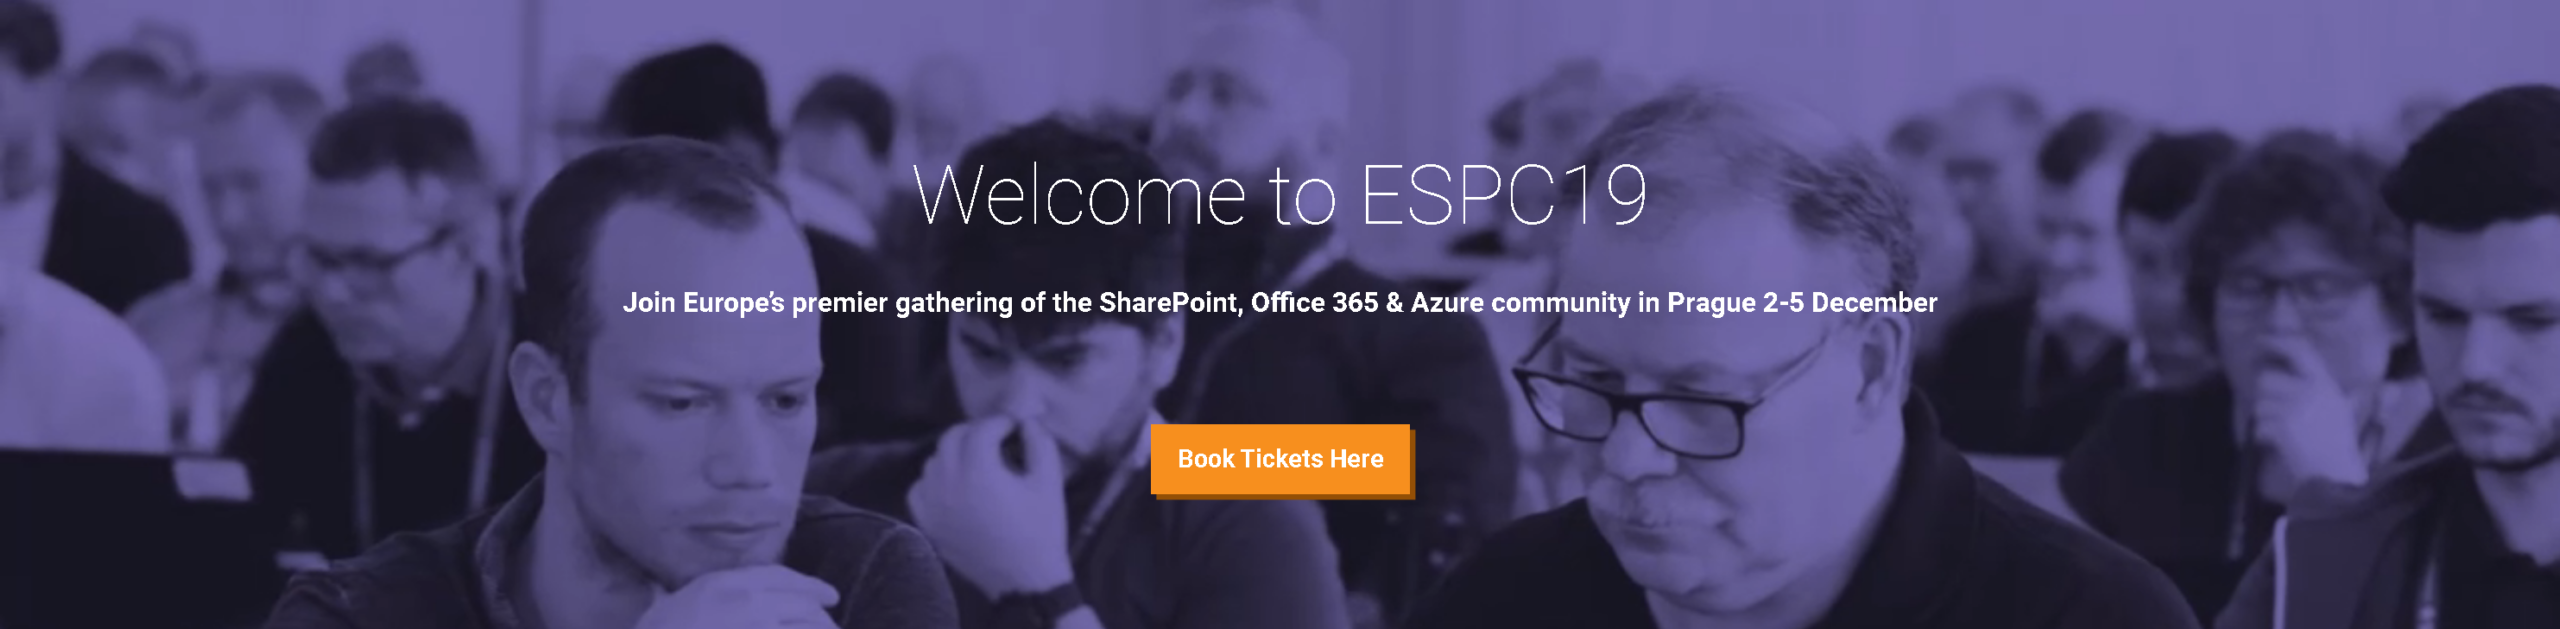 Join Europe's premier gathering of the SharePoint, Office 365 & Azure community in Prague 2-5 December